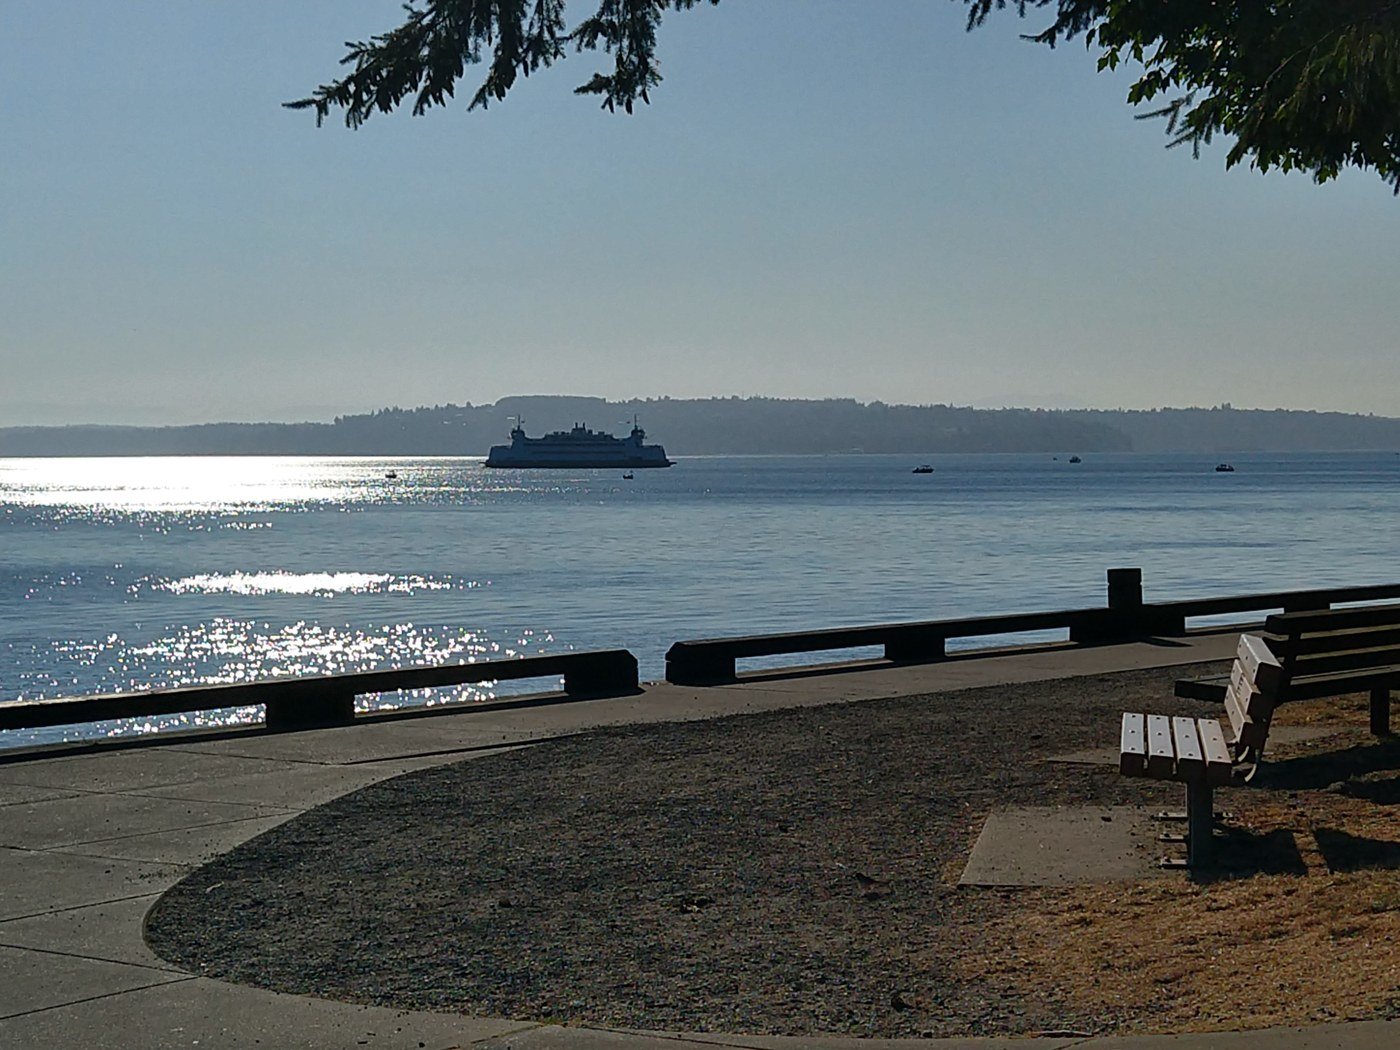 A paved trail curves around the puget sound waterfront. Photo by Criada.